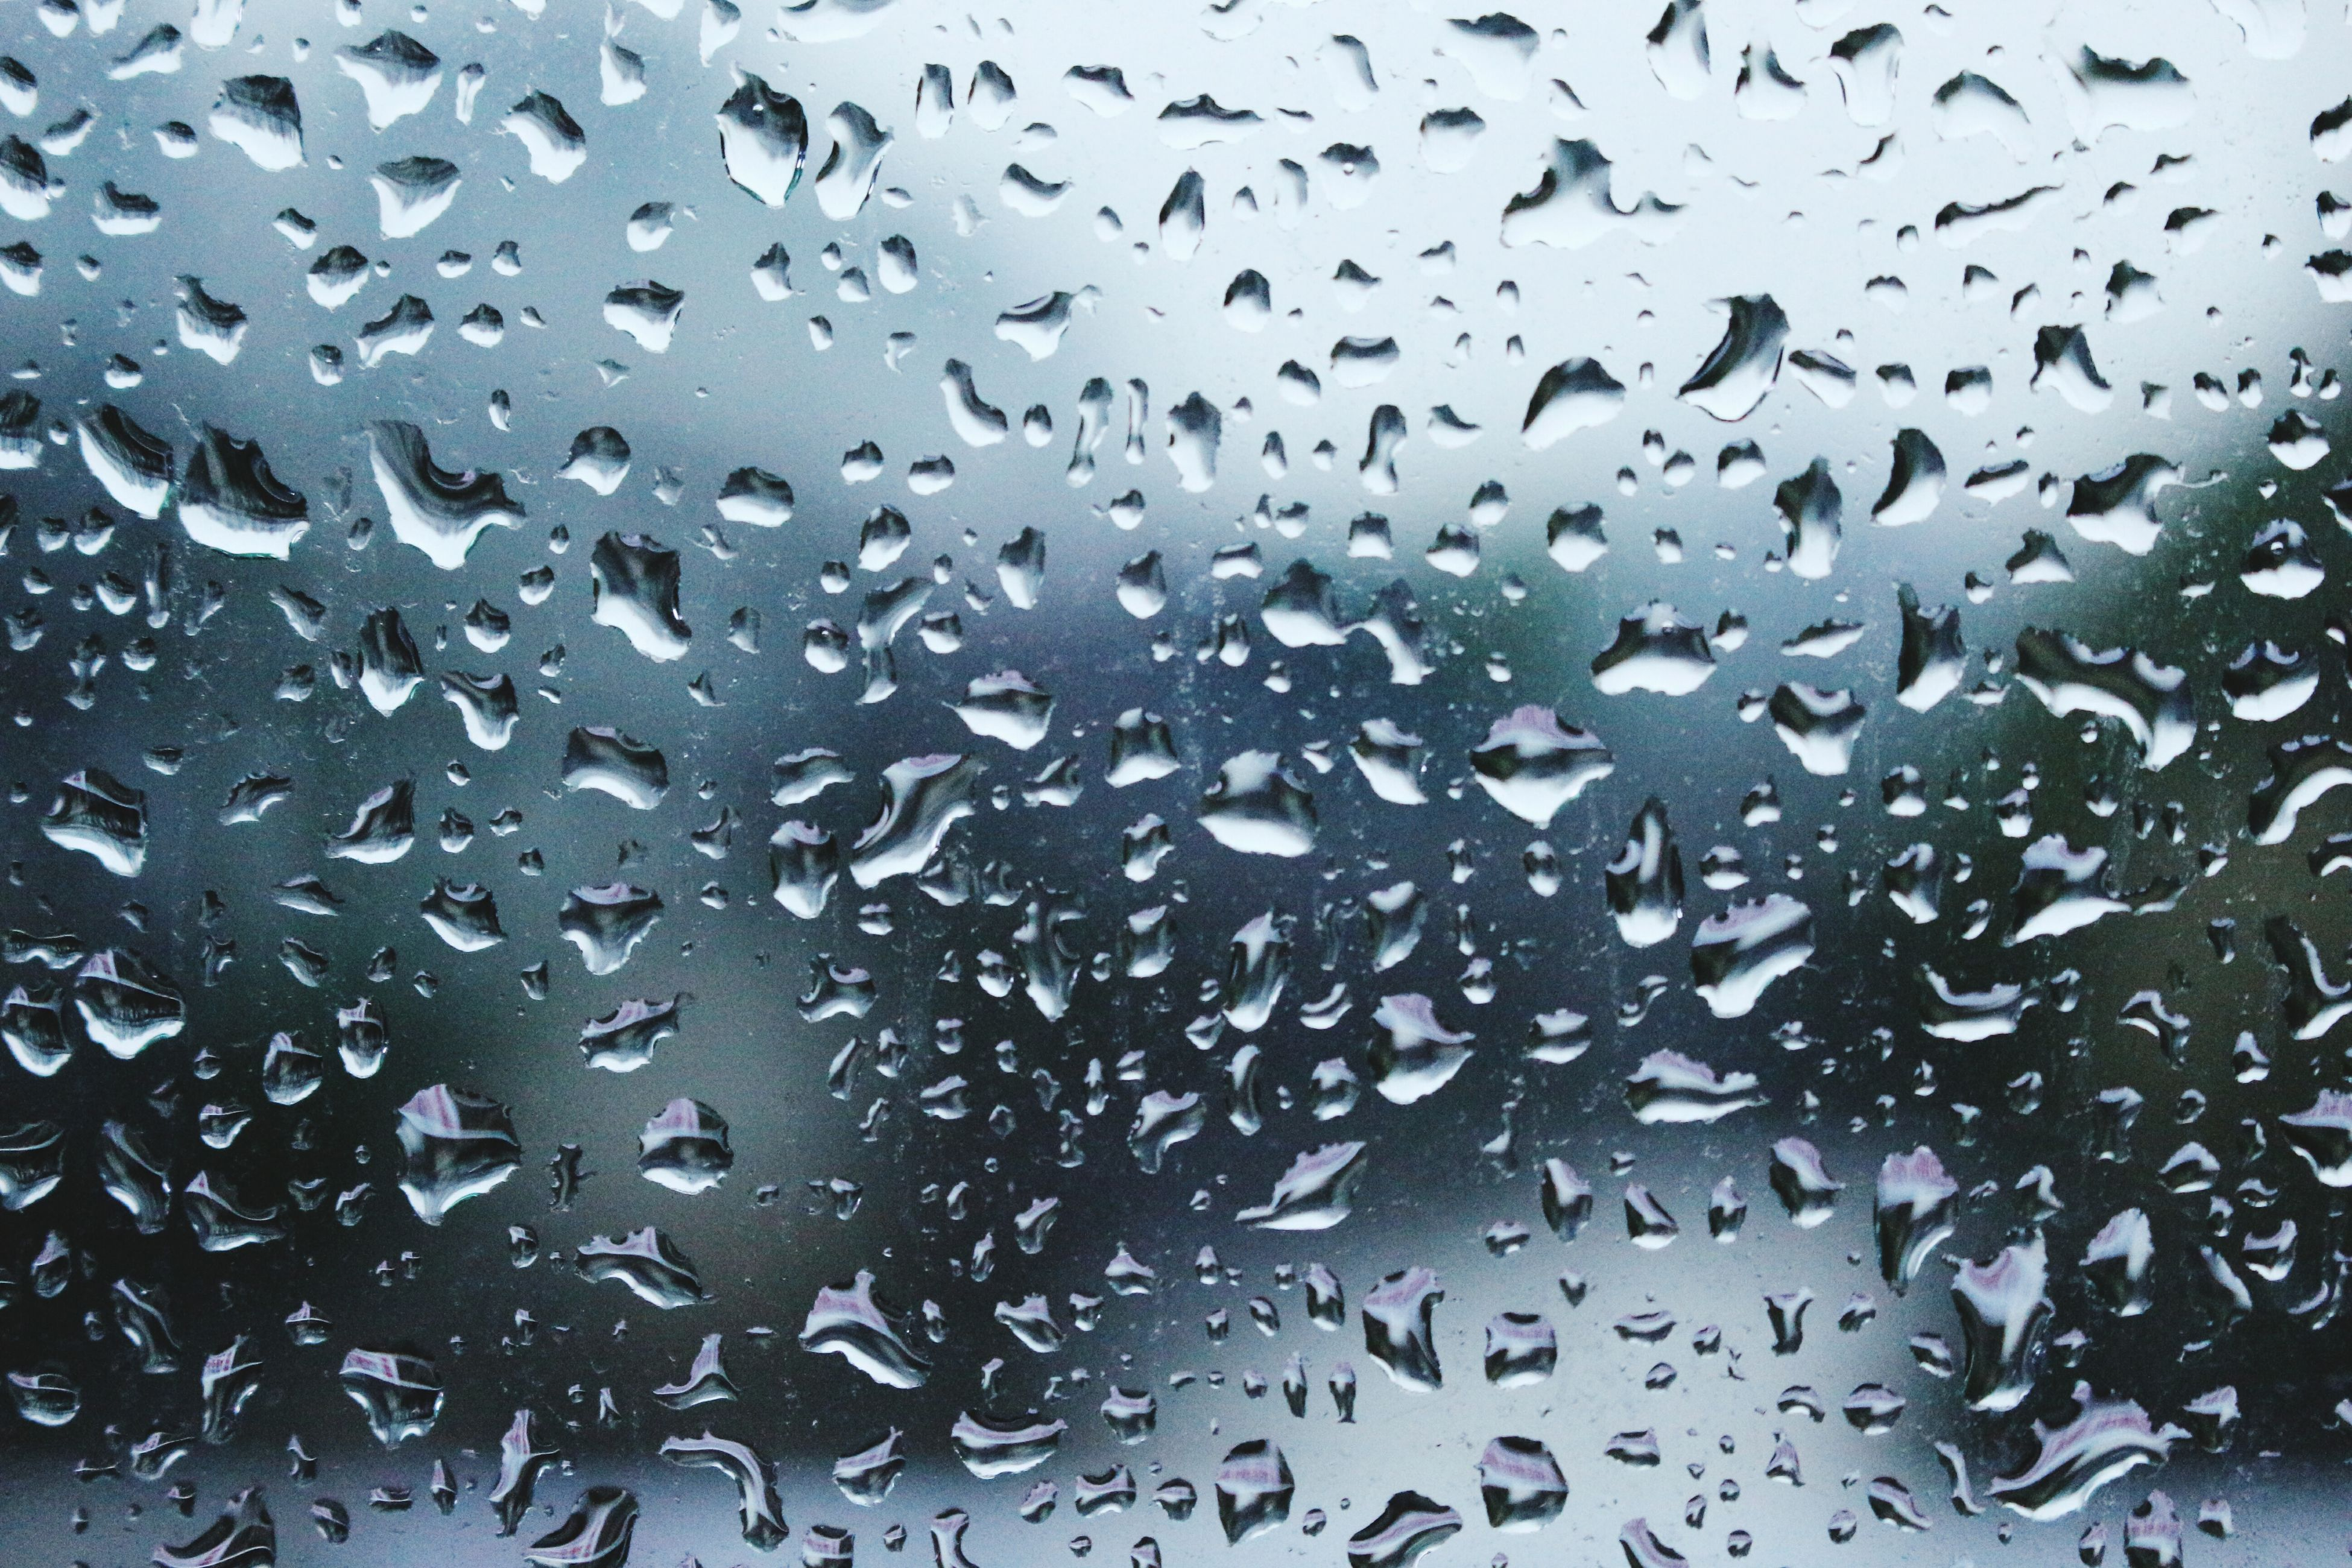 drop, wet, water, window, rain, transparent, full frame, backgrounds, glass - material, indoors, weather, season, raindrop, sky, close-up, glass, focus on foreground, nature, day, no people